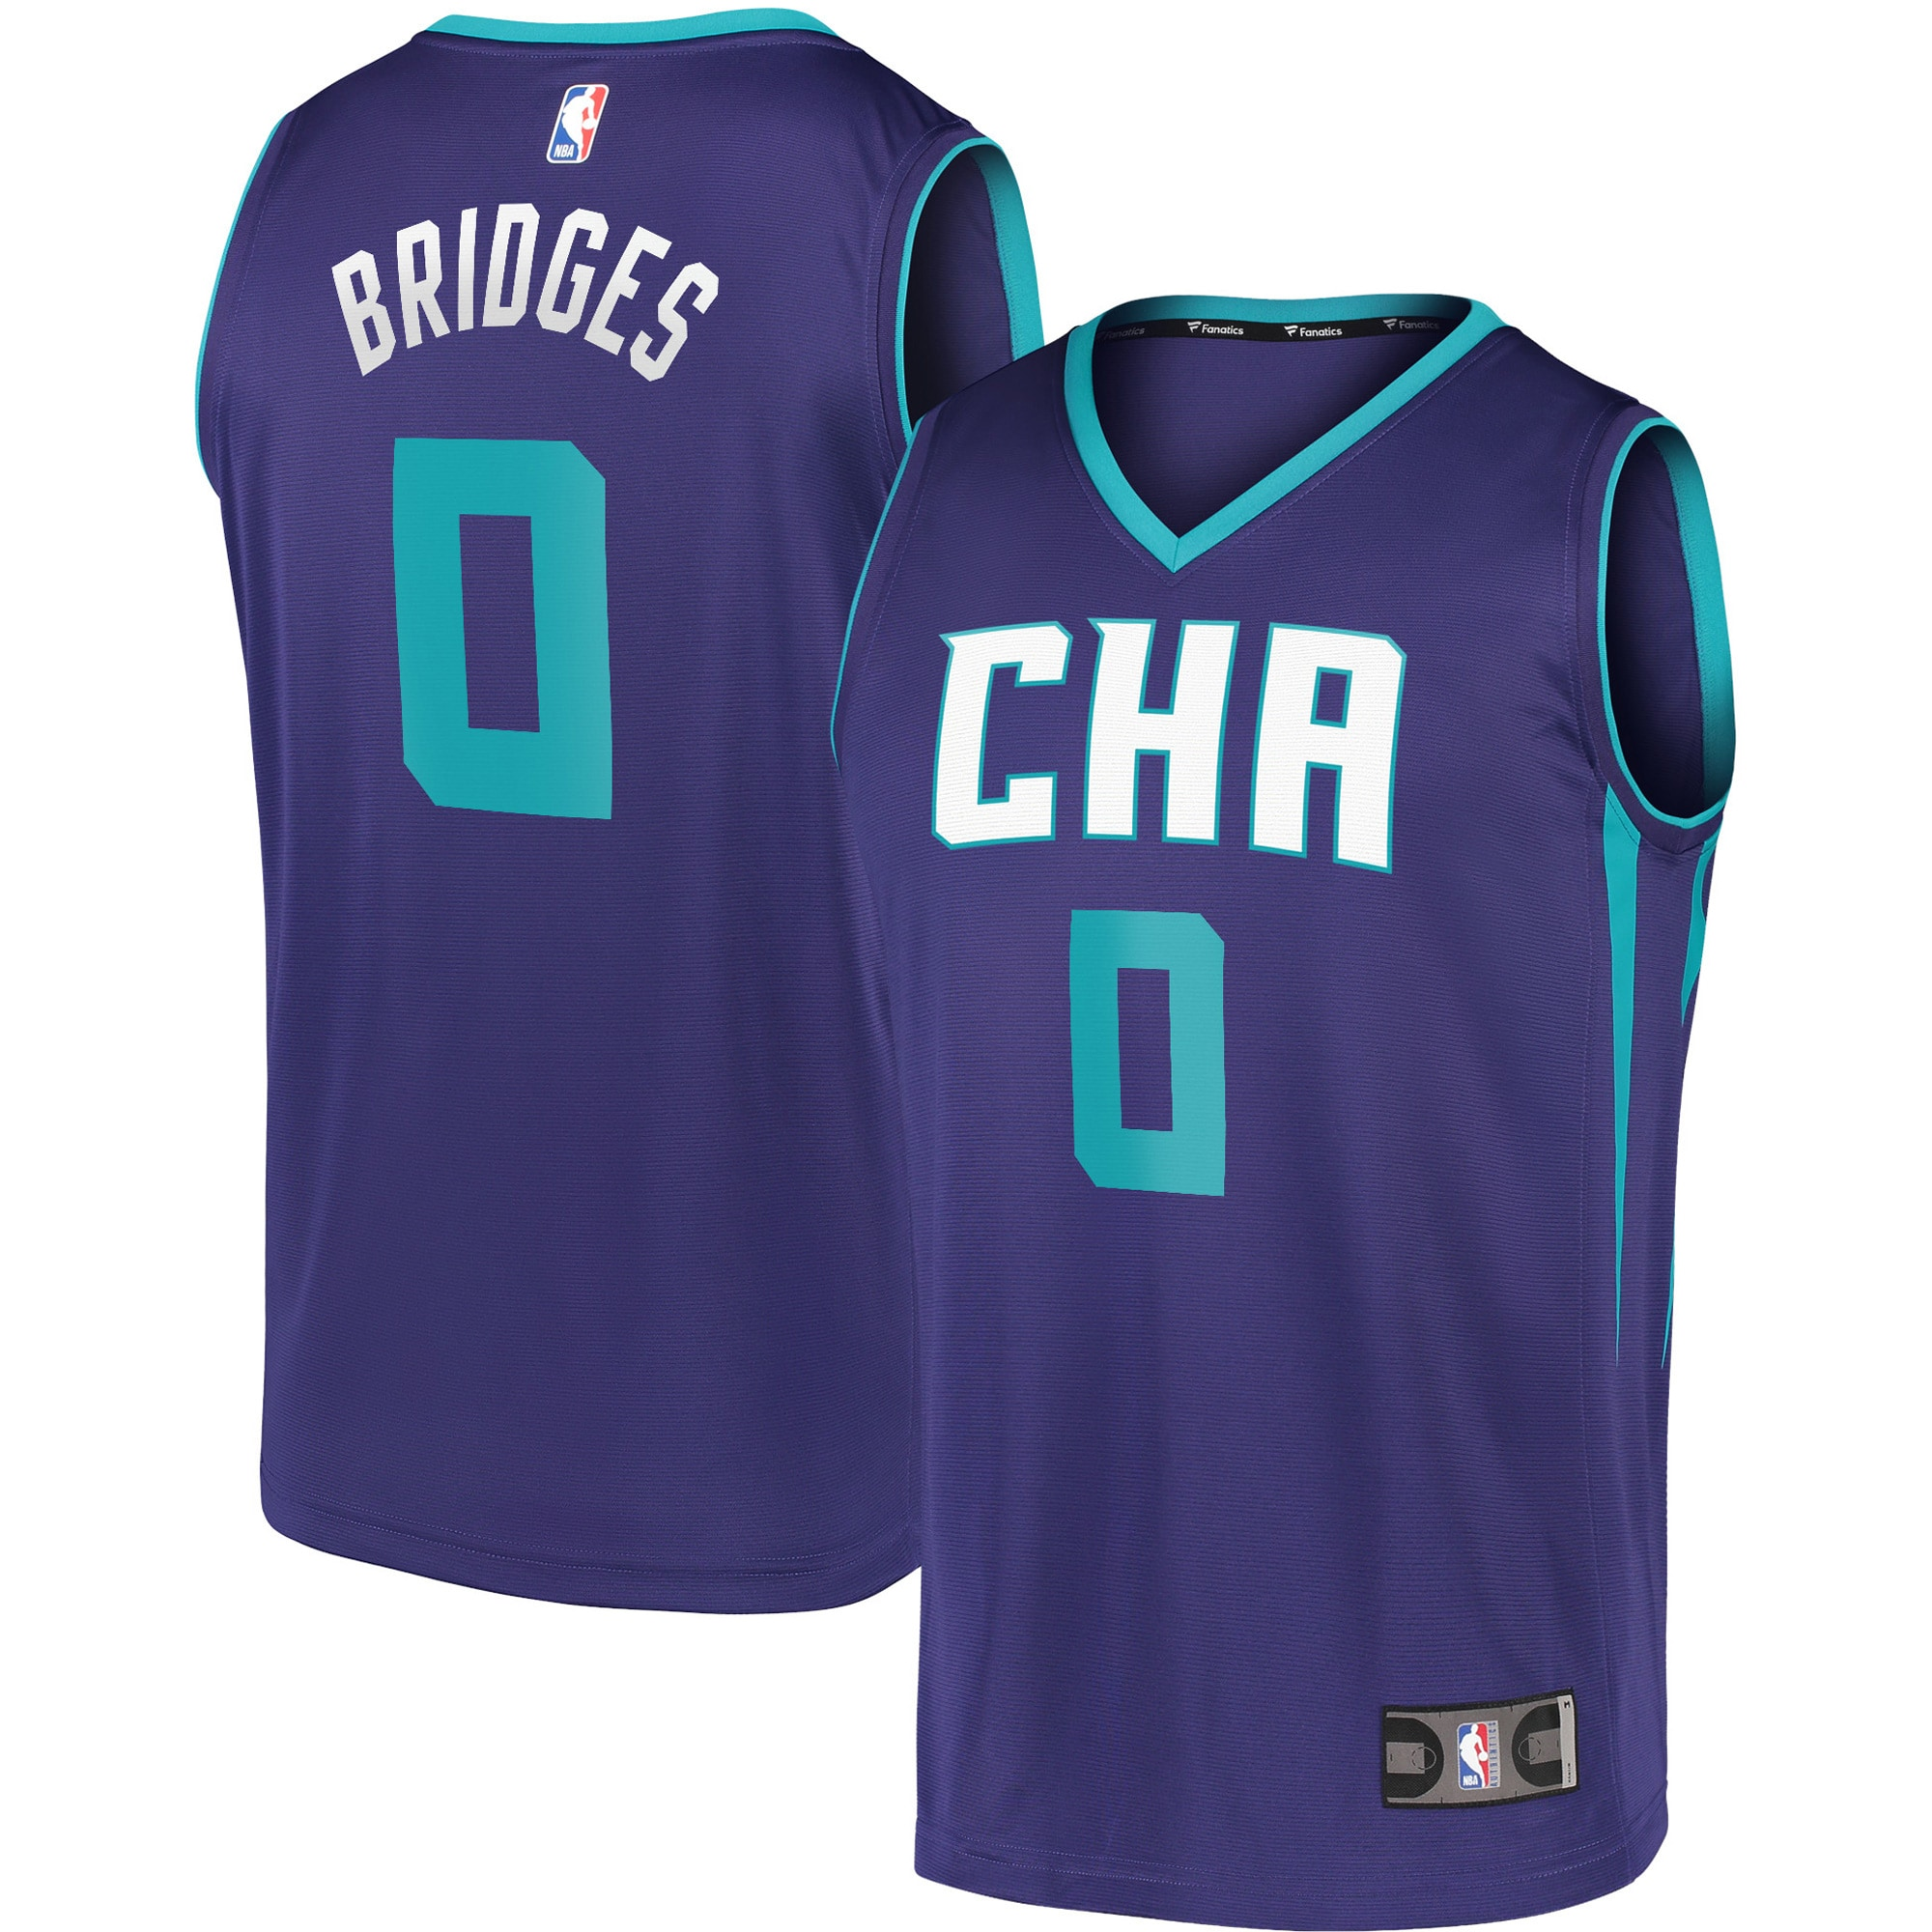 Miles Bridges Charlotte Hornets Fanatics Branded Youth Fast Break Replica Player Team Jersey - Statement Edition - Purple